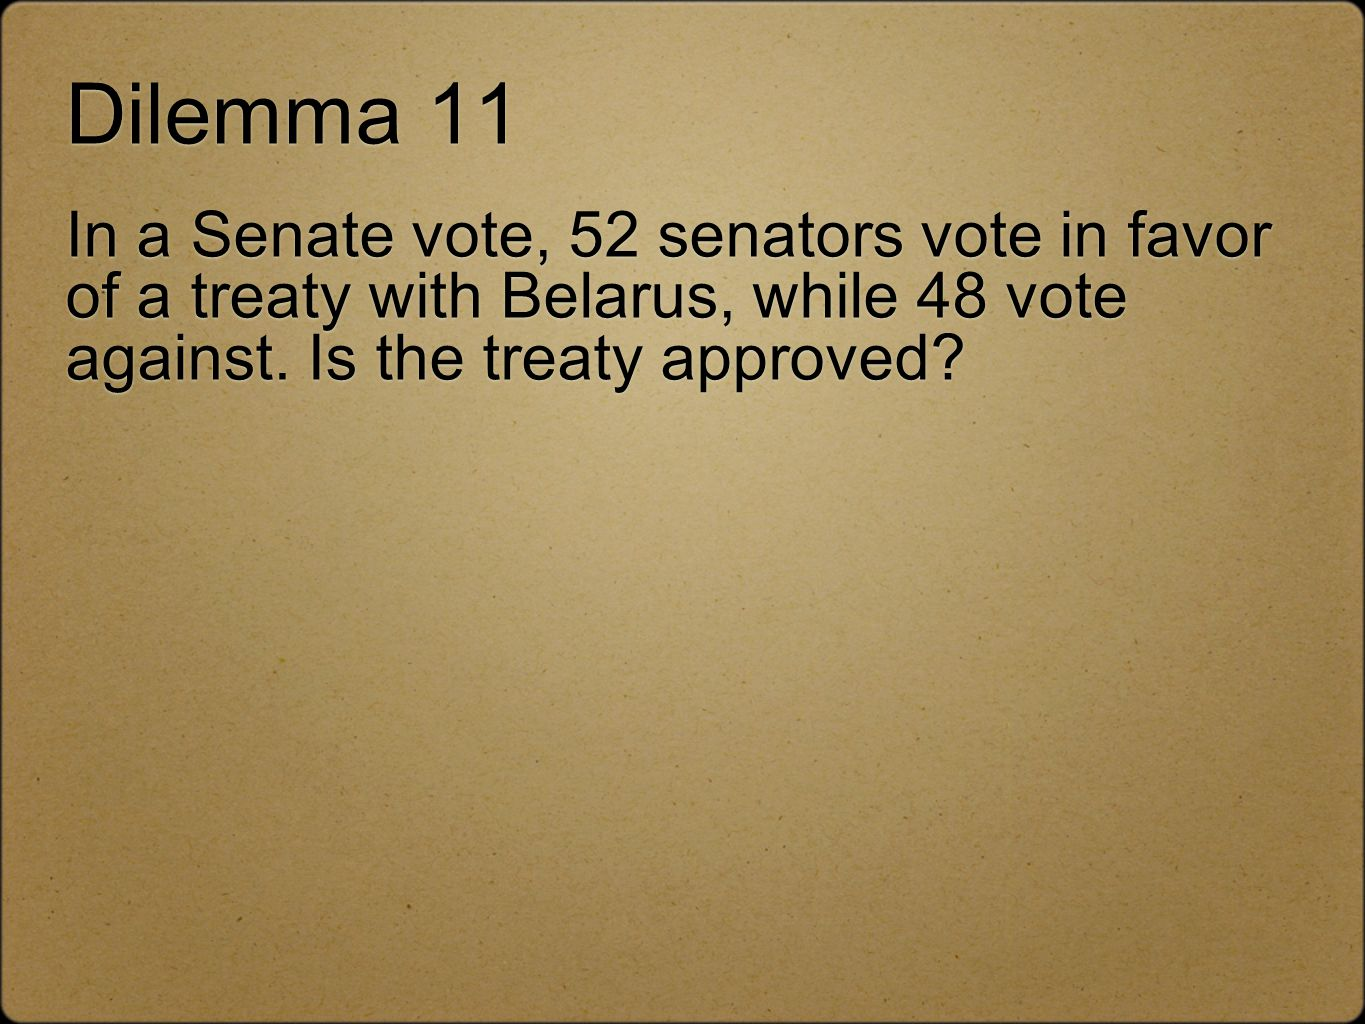 Dilemma 11 In a Senate vote, 52 senators vote in favor of a treaty with Belarus, while 48 vote against.